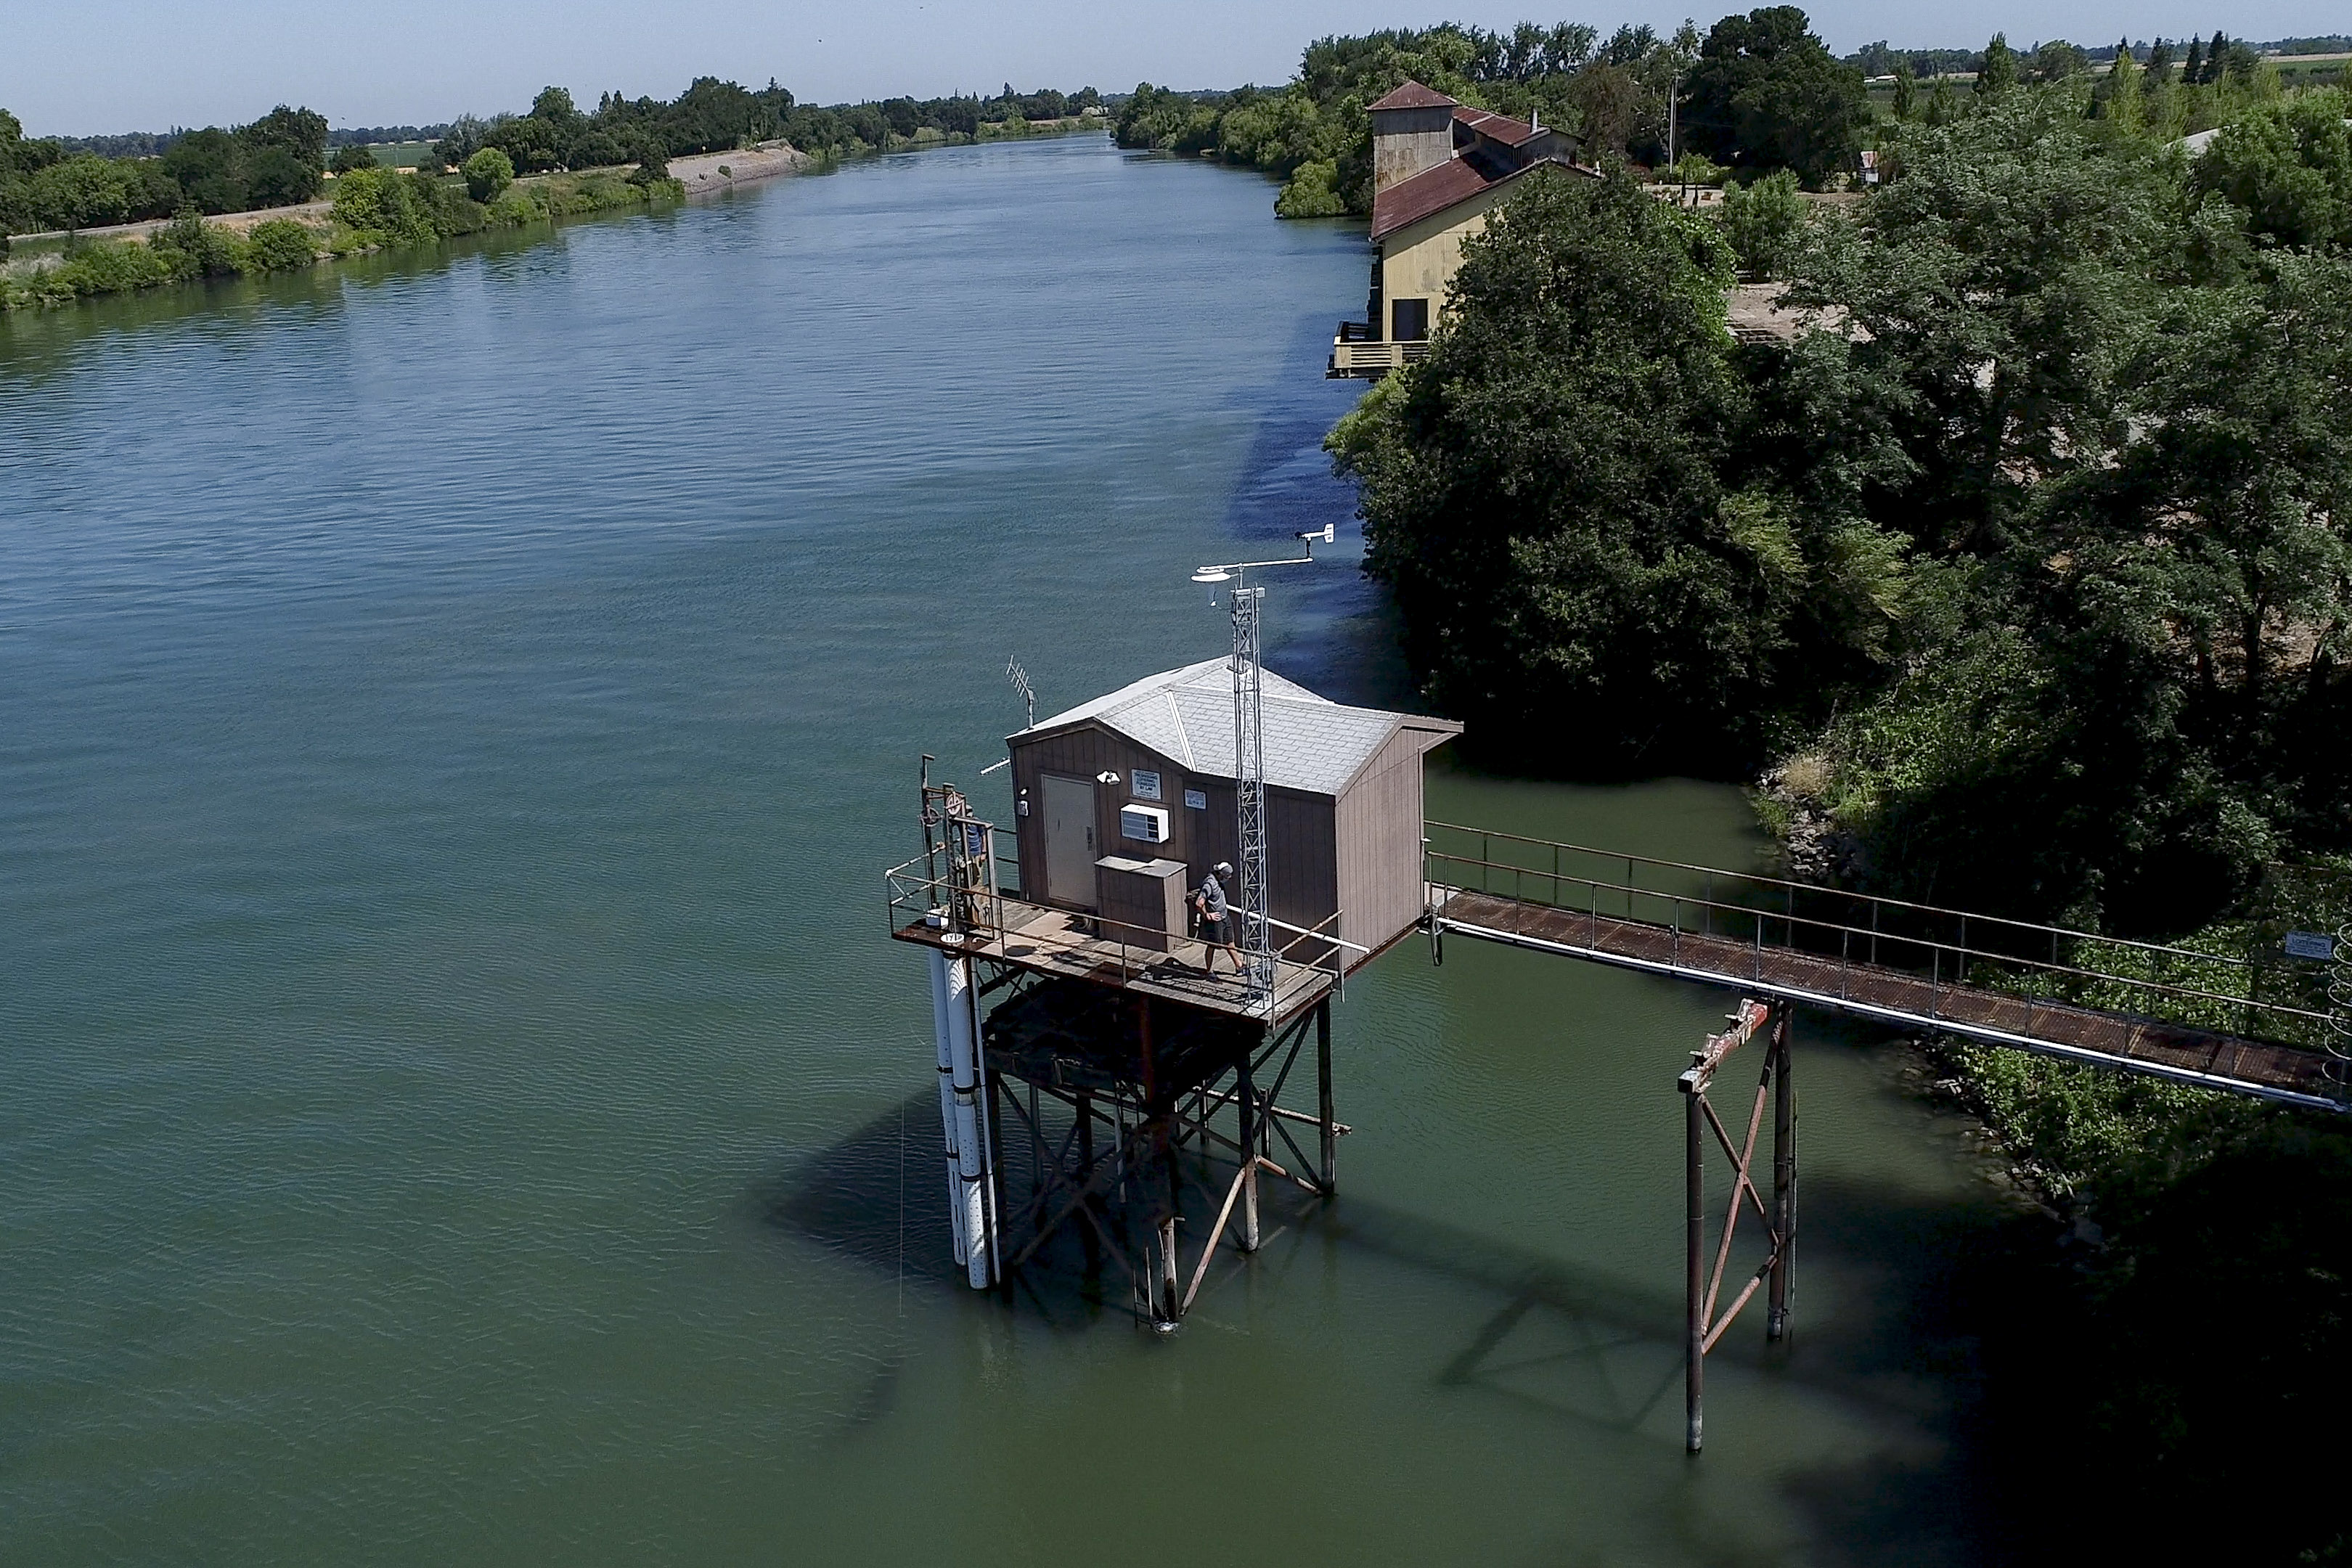 CEMP monitoring sites, resembling sheds, on the Sacramento-San Joaquin Delta house state-of-the-art water quality sampling and recording technology.